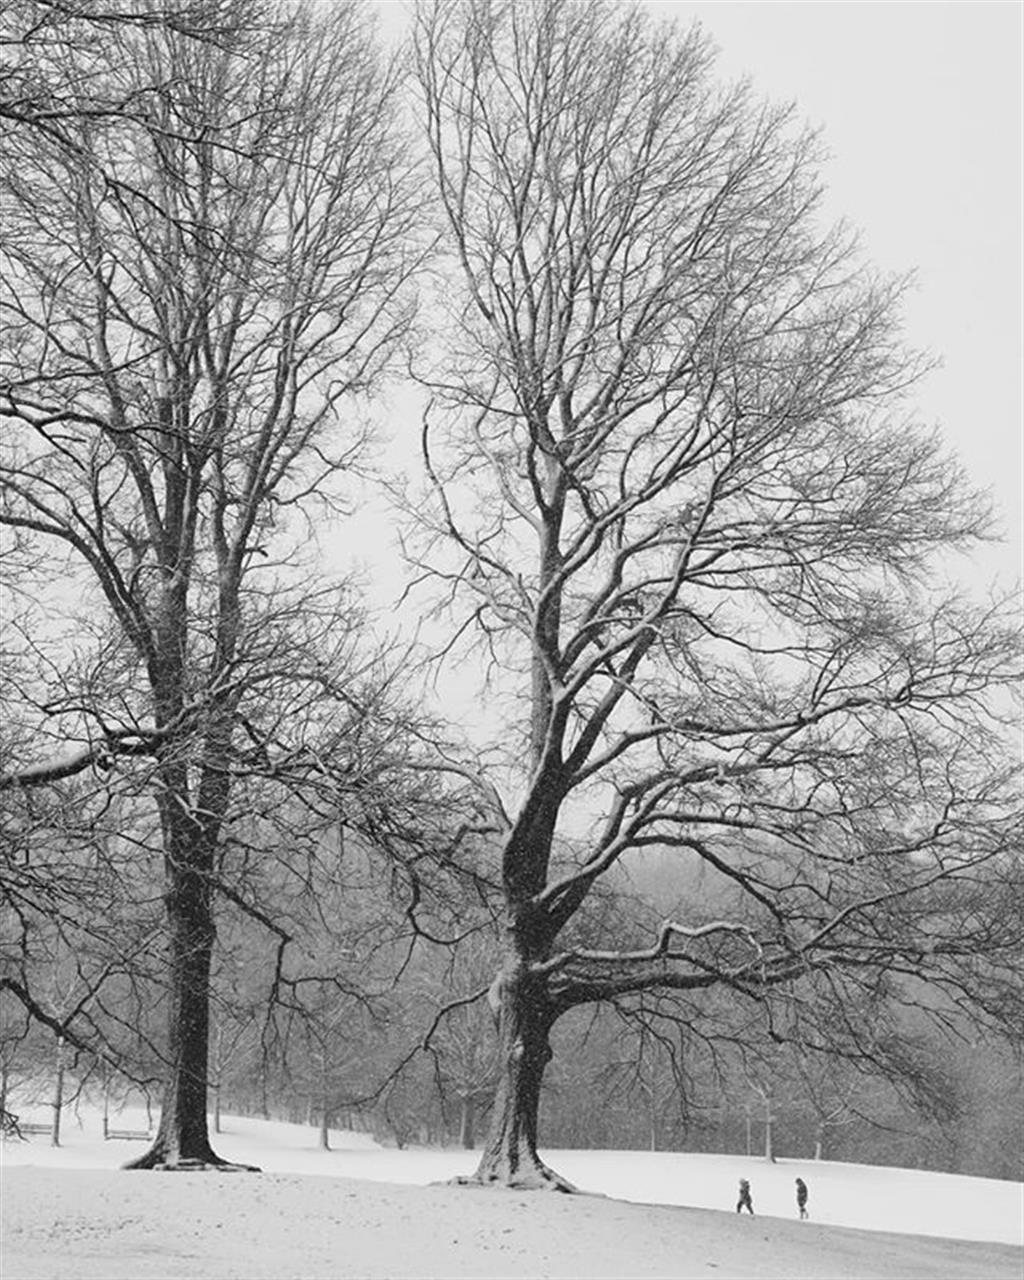 Snowy day in #NYC #Brooklyn #prospectpark I even heard thunder several times during the day. #trees #tree_magic #snow #parks #blackandwhite #naturephotography #naturelover #nature #beautiful #snowstorm #picballot #eye_for_earth #wildlife #Exploreyourhood #leadingrelocal #yourshot